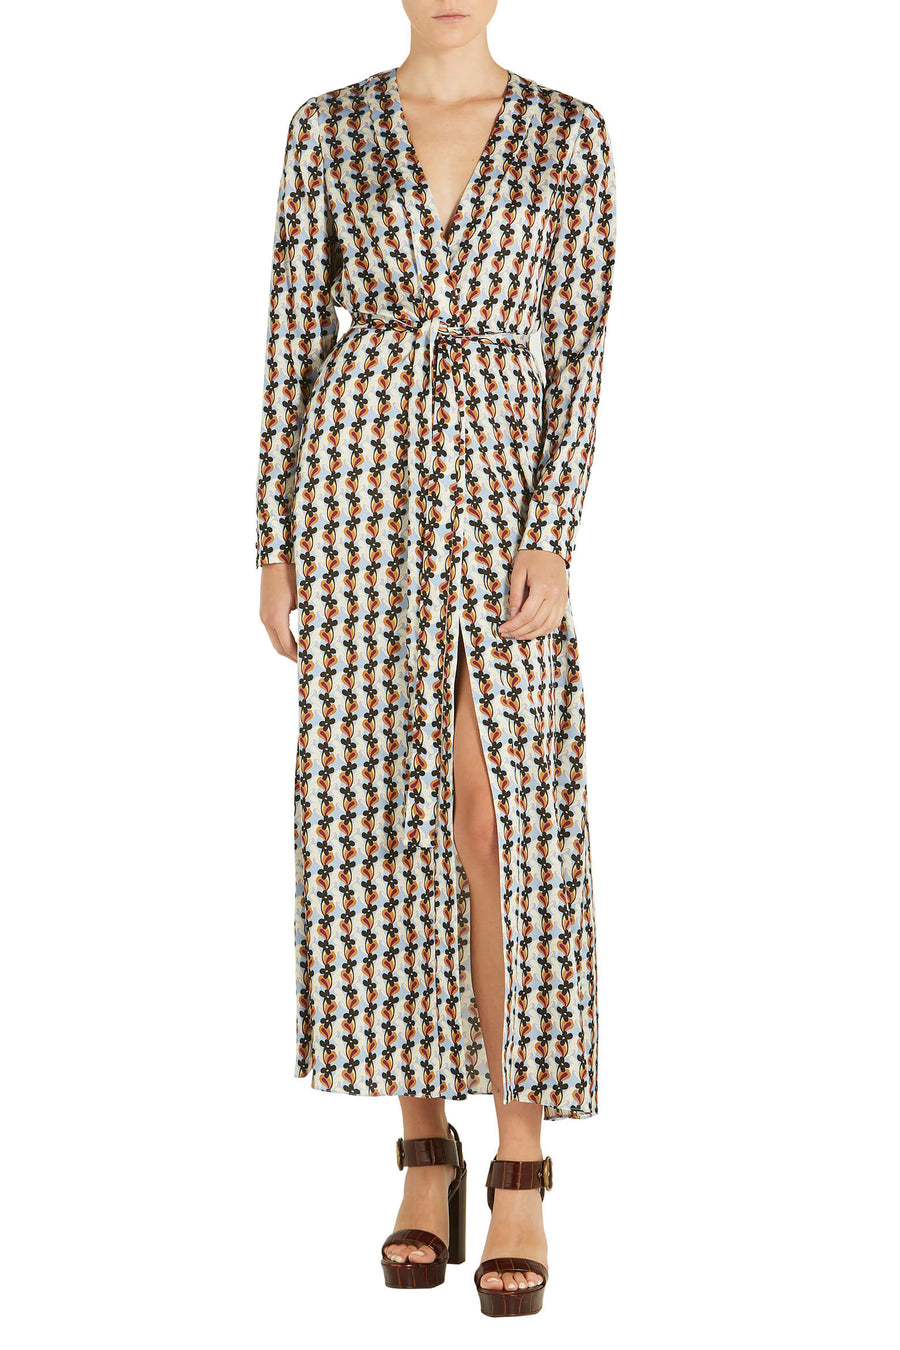 Alexis Cosgrove Robe Dress from The New Trend